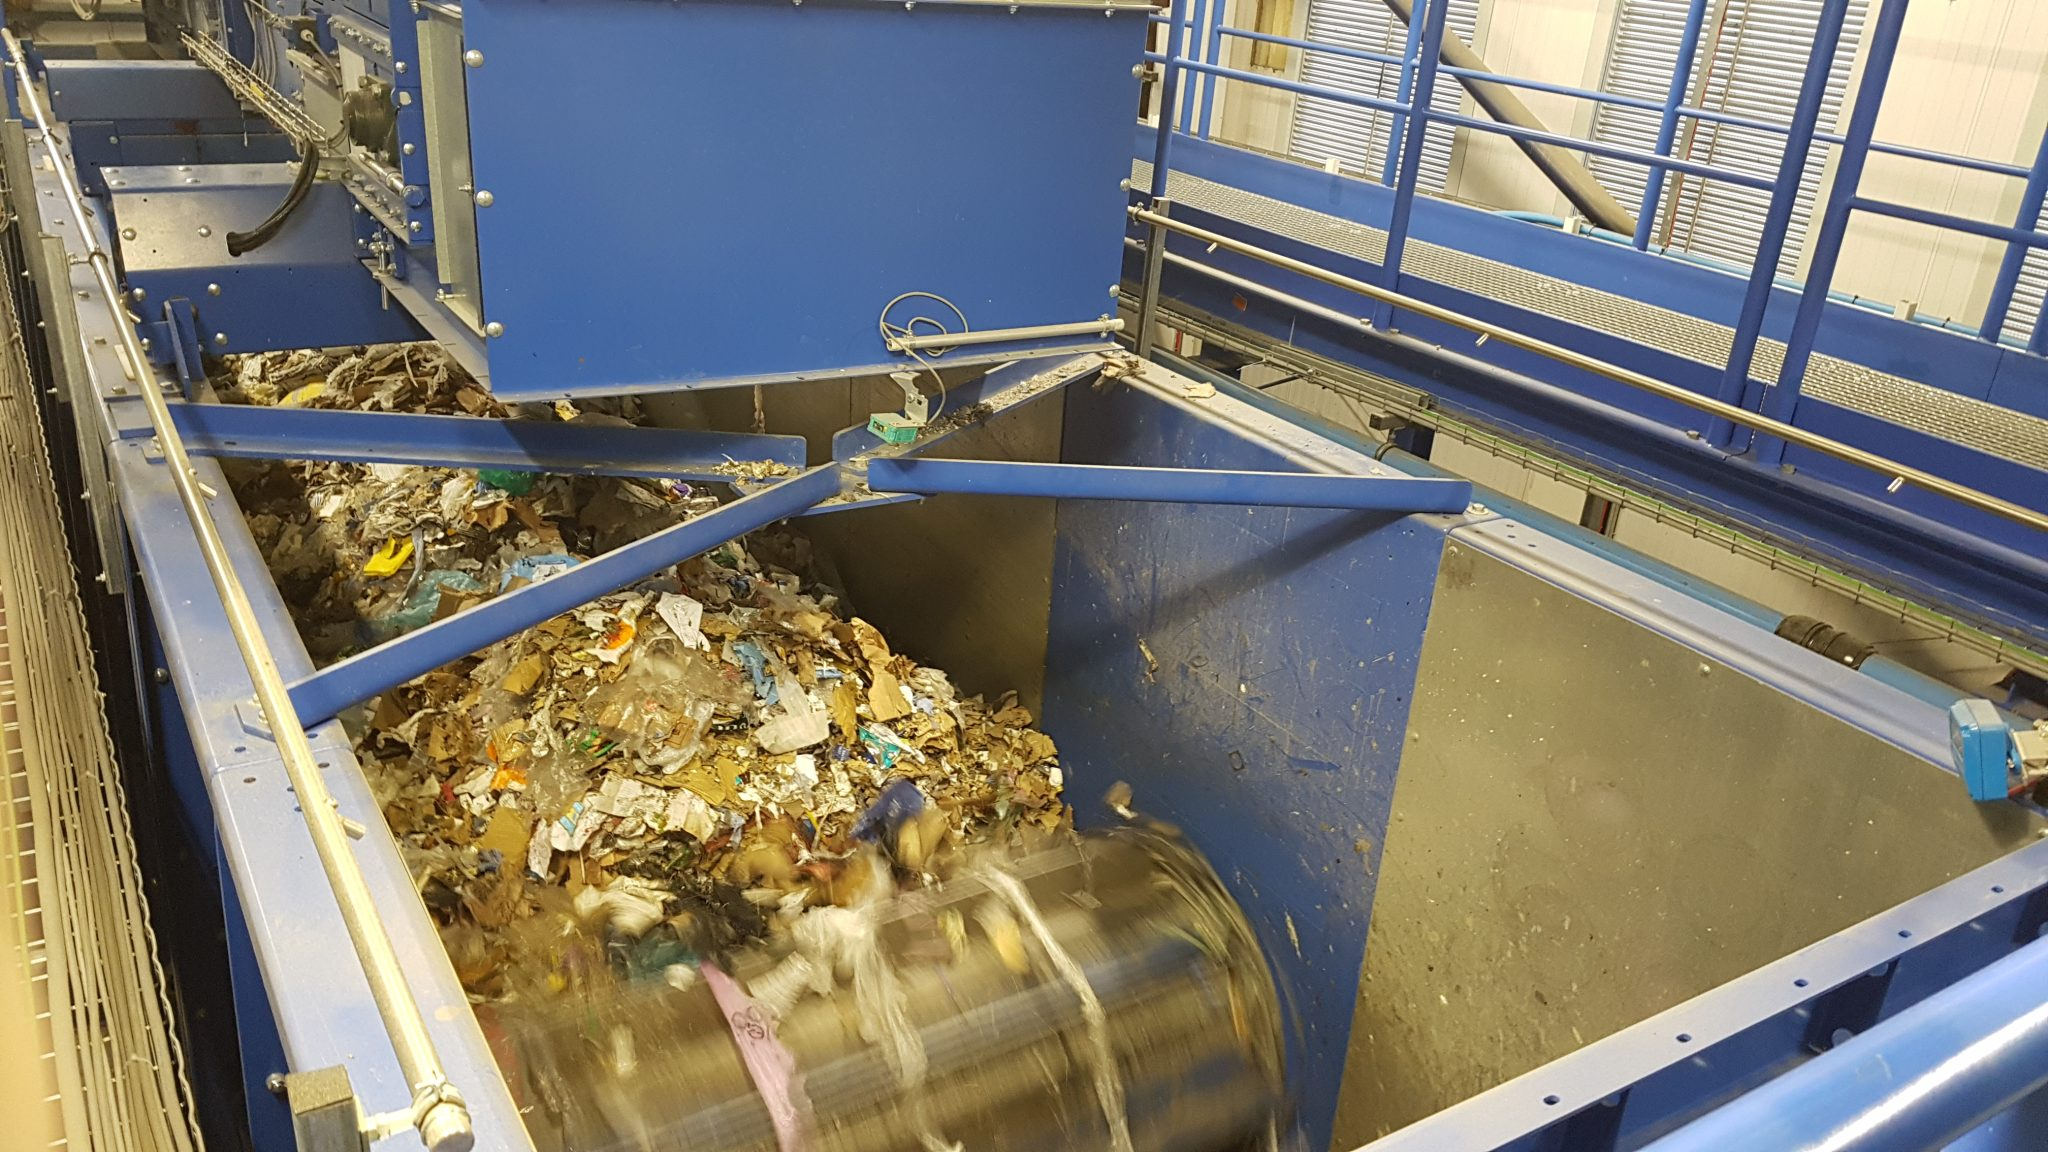 Flame Detector protecting Waste Recycling Dosing Bunker